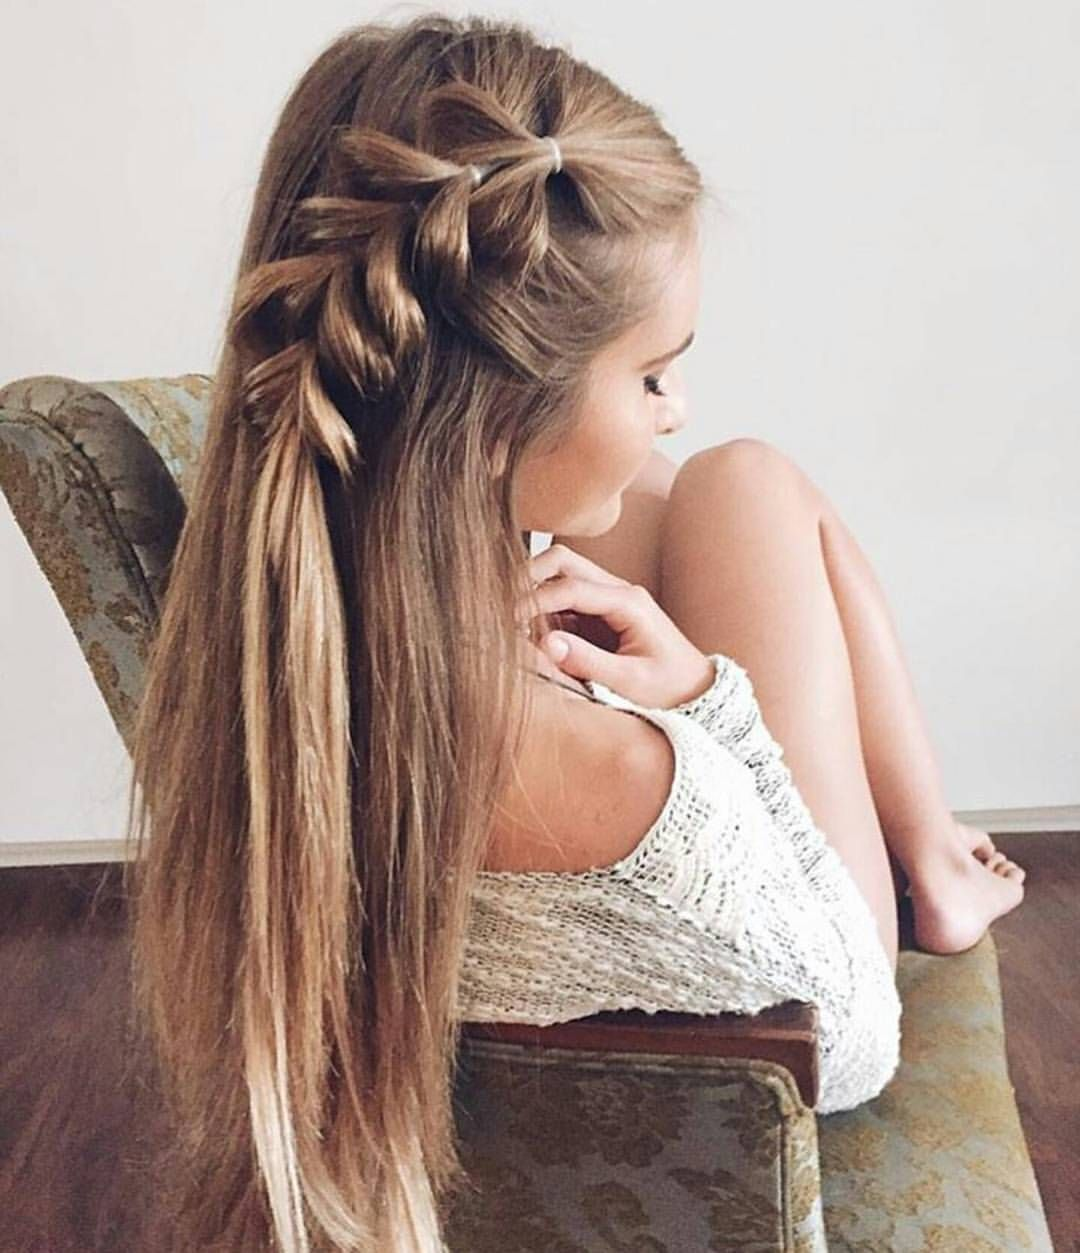 Pin by alex fage on hairs pinterest instagram hair style and